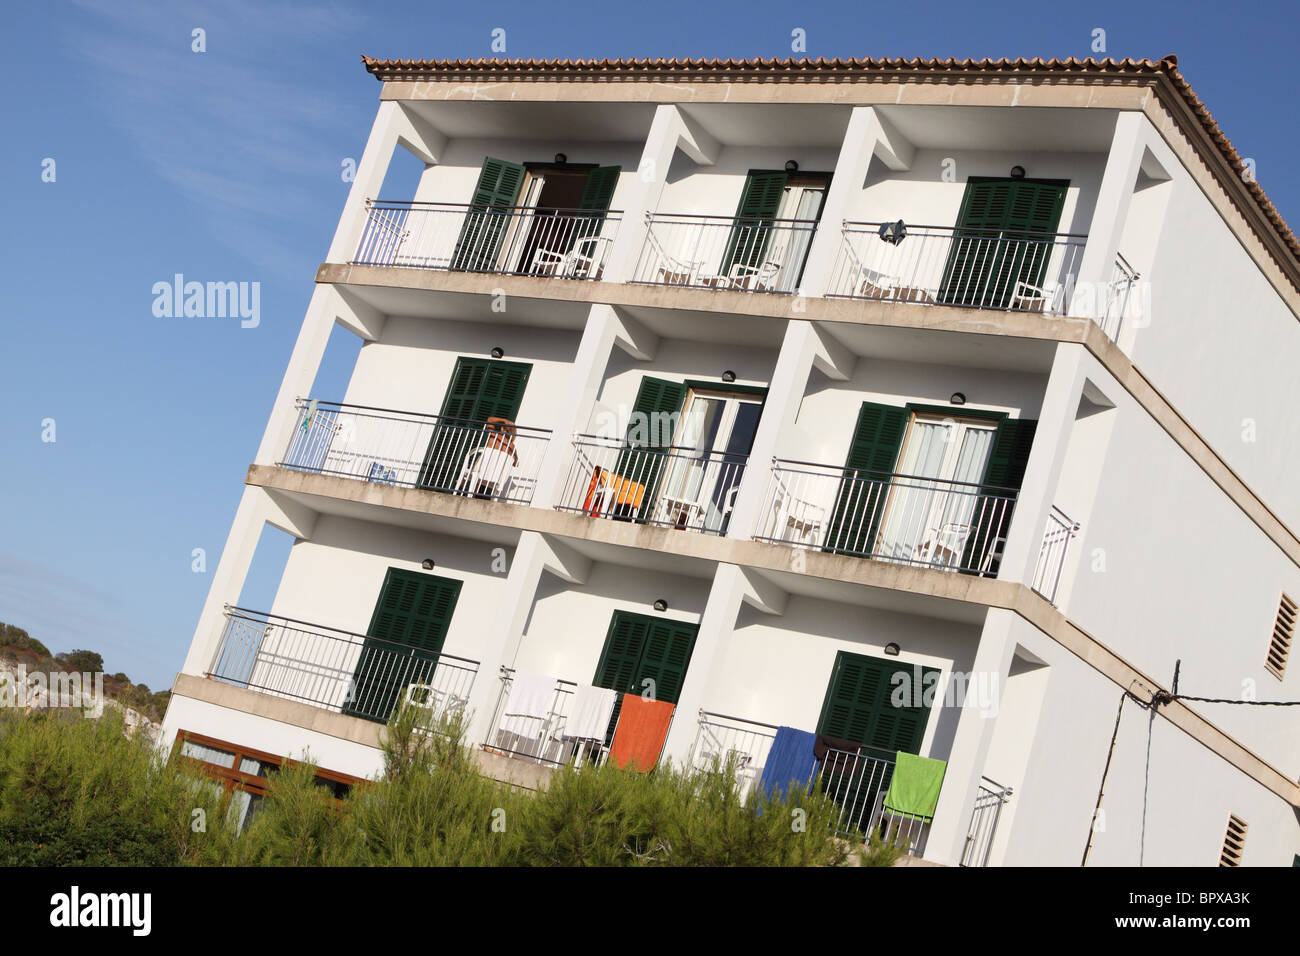 Holiday Apartment Accommodation Rooms To Rent In Spain   Stock Image